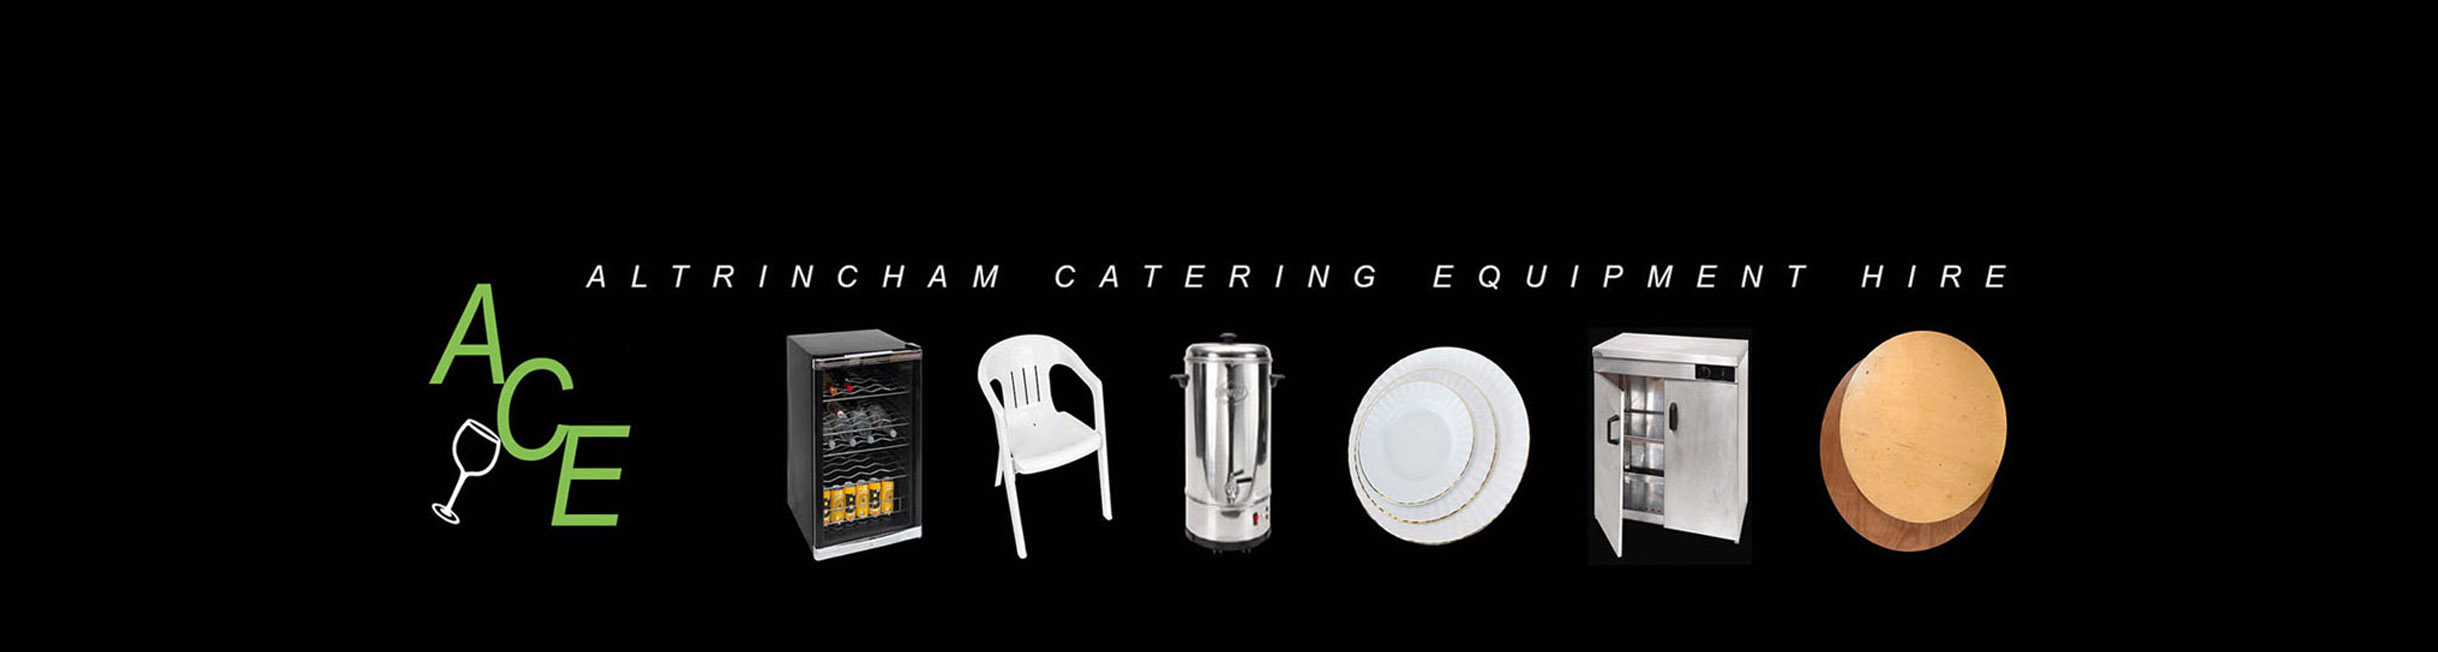 Miscellaneous Catering Equipment Hire | Manchester